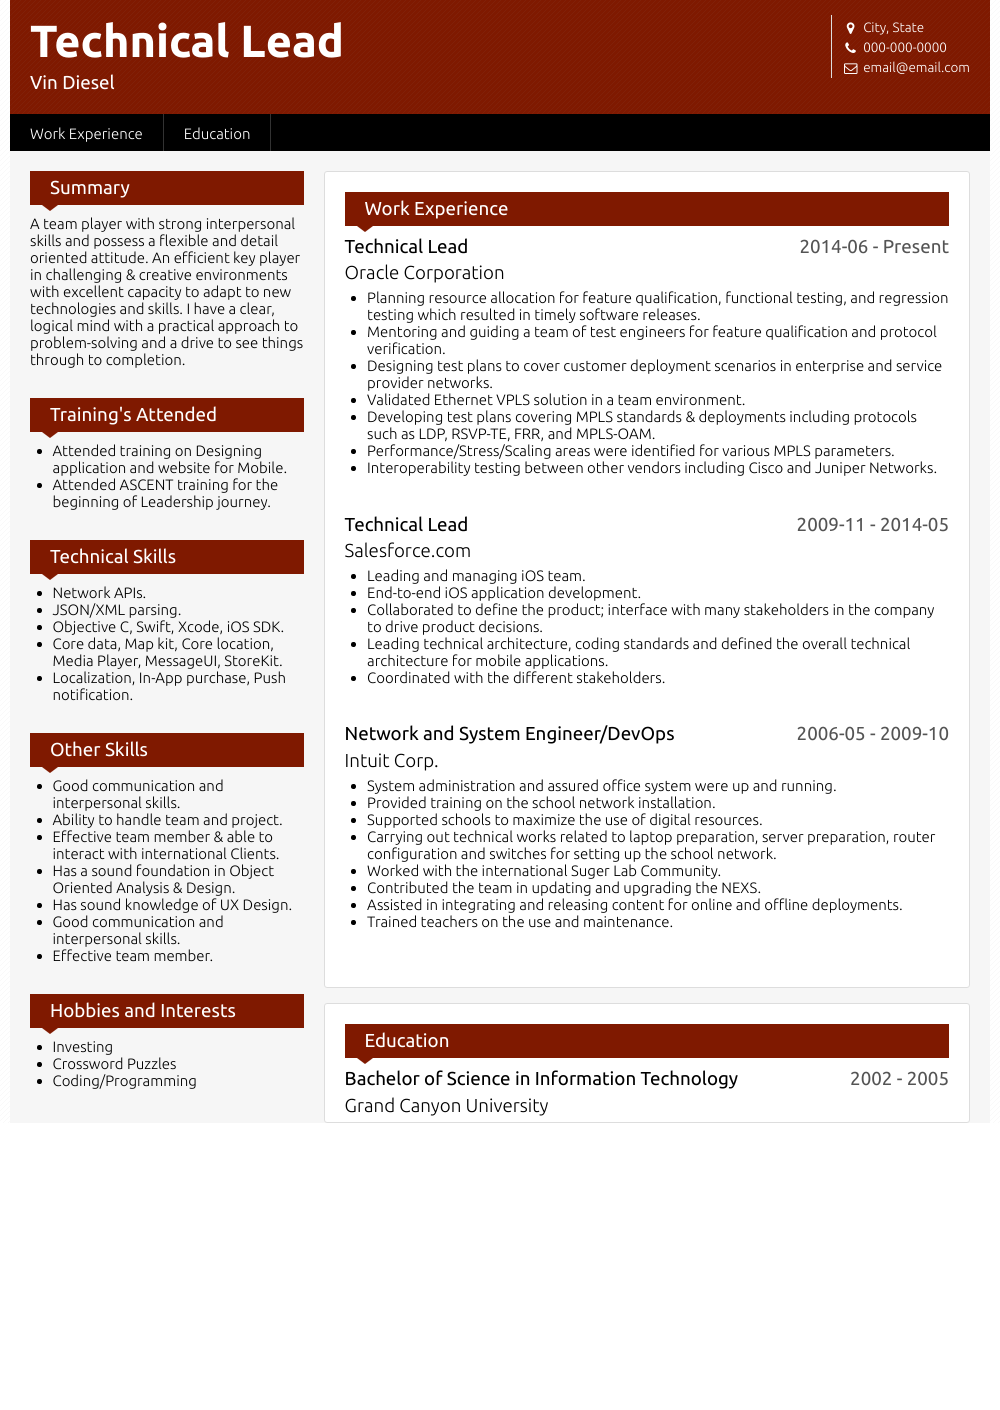 Technical Lead Resume Sample and Template